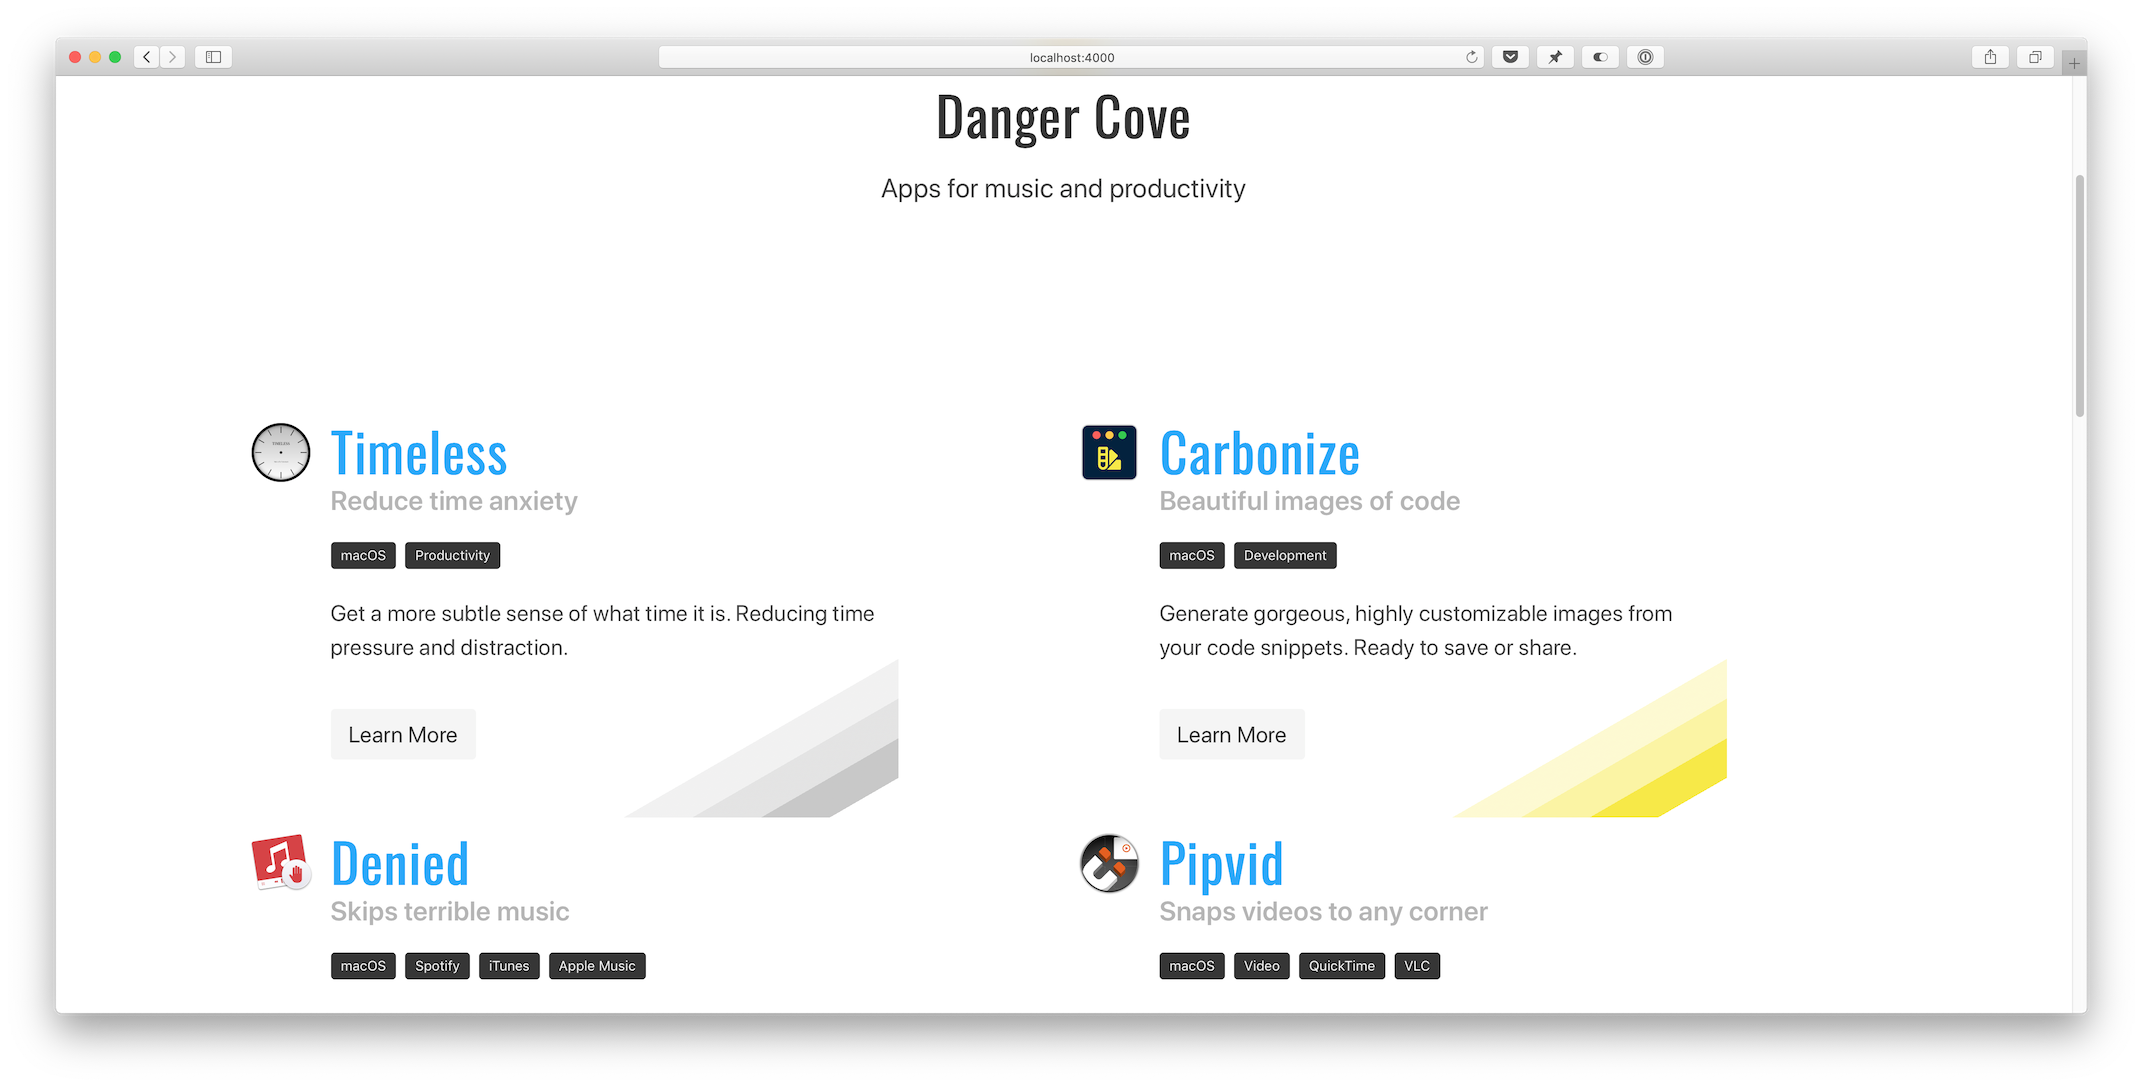 A screenshot of the homepage before the changes. There was a large header with just the Danger Cove logo.